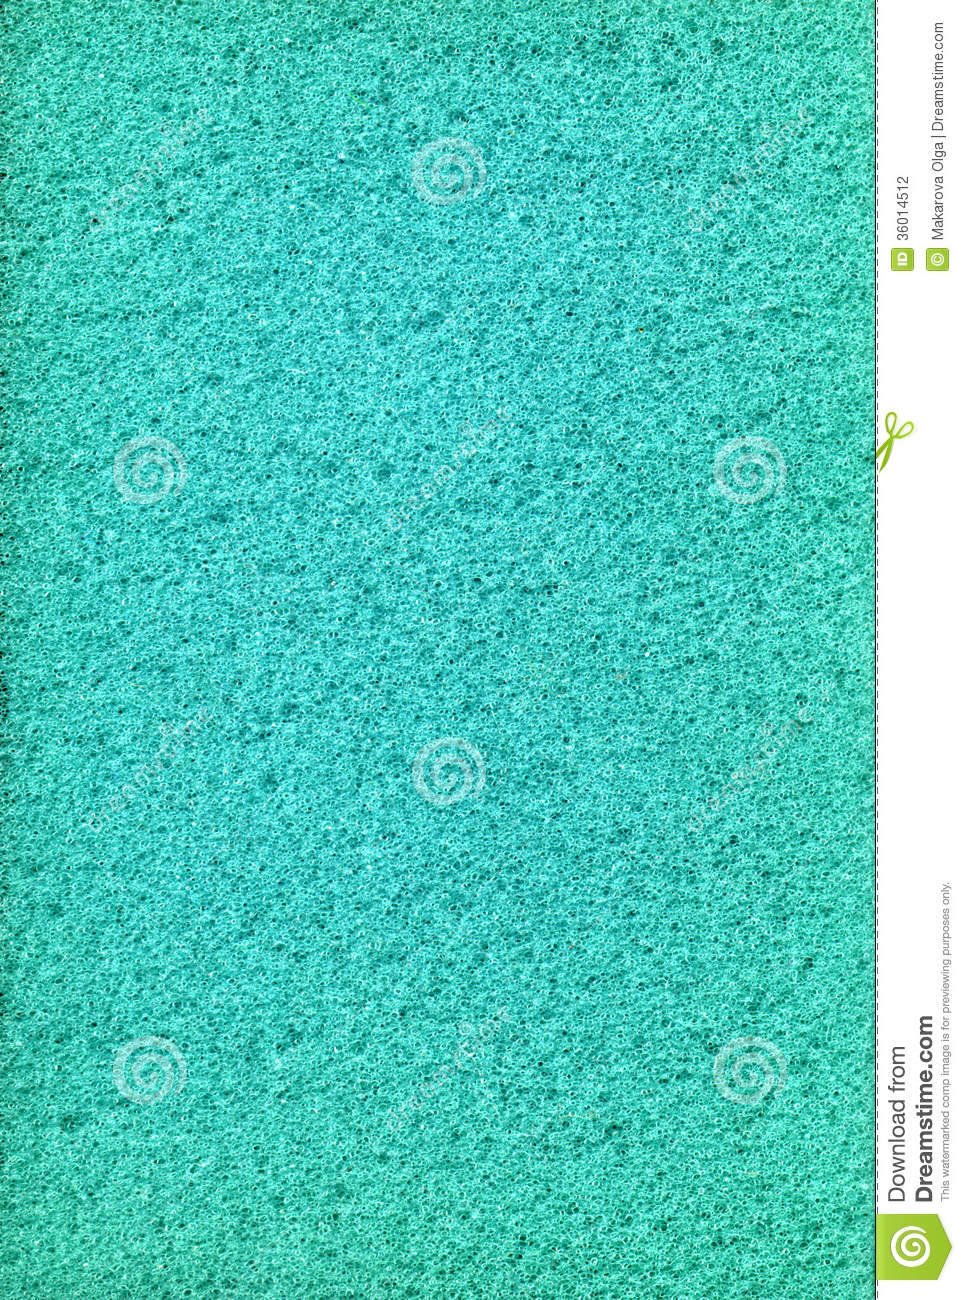 Green sponge texture stock photography image 36014512 - Seven different uses of the kitchen sponge ...